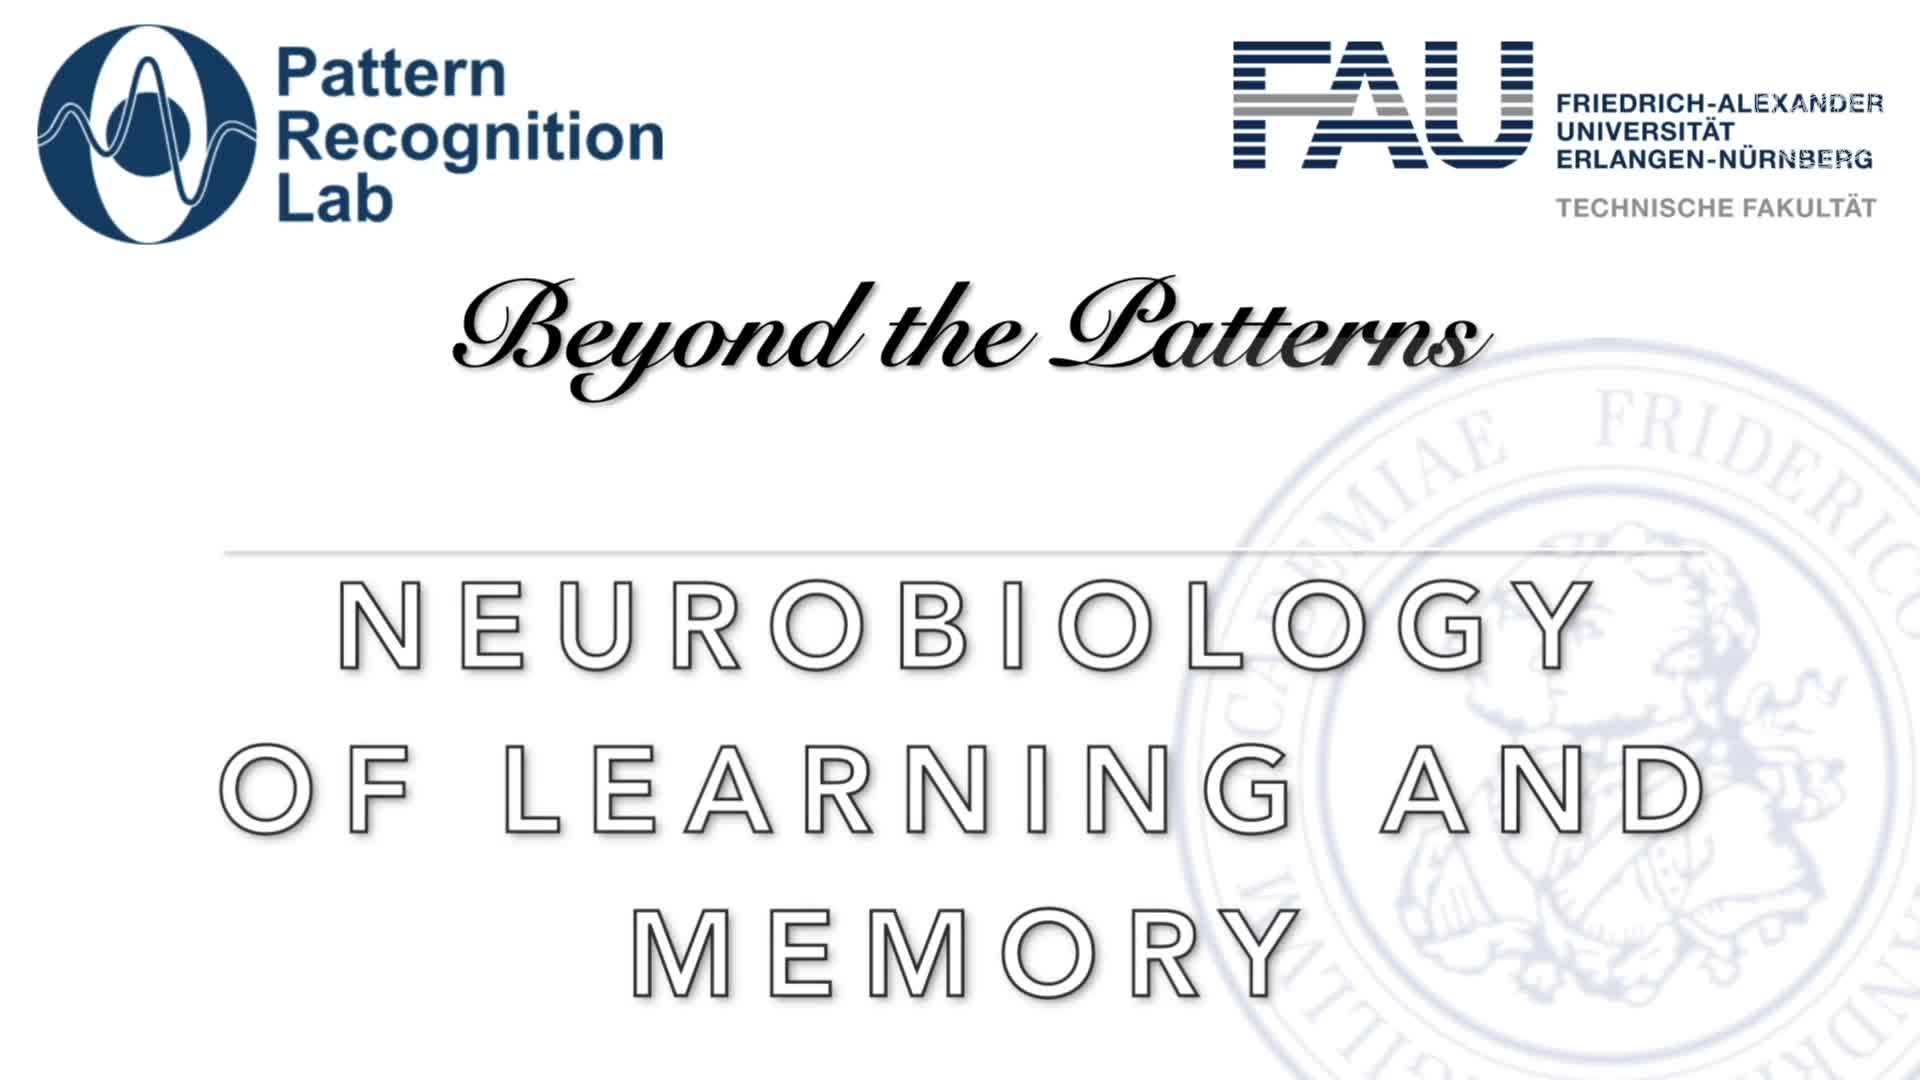 Beyond the Patterns - Prof. Dr. Holger Schulze - Neurobiology of Learning preview image